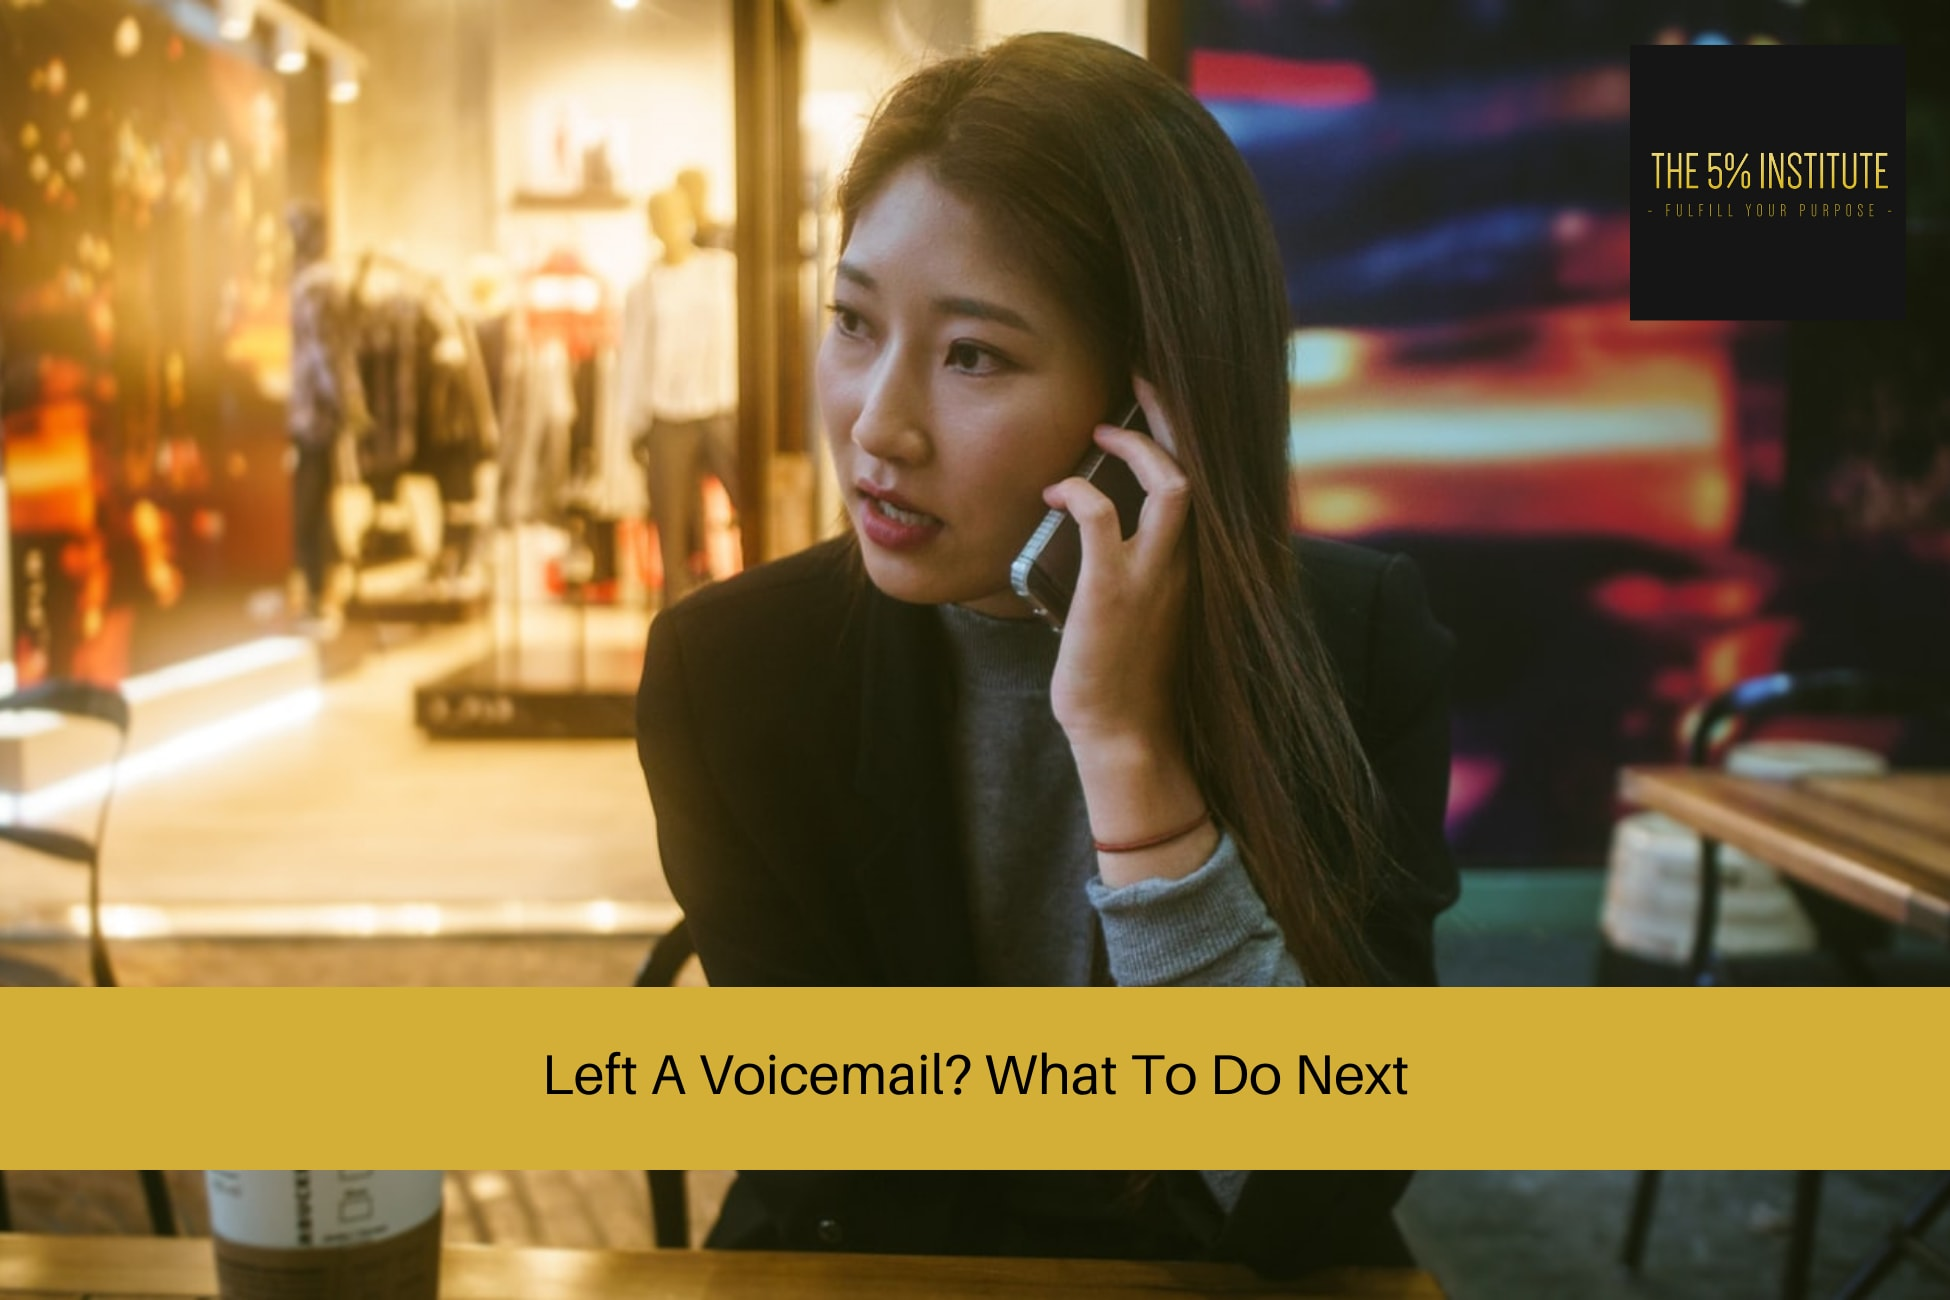 Left A Voicemail? What To Do Next